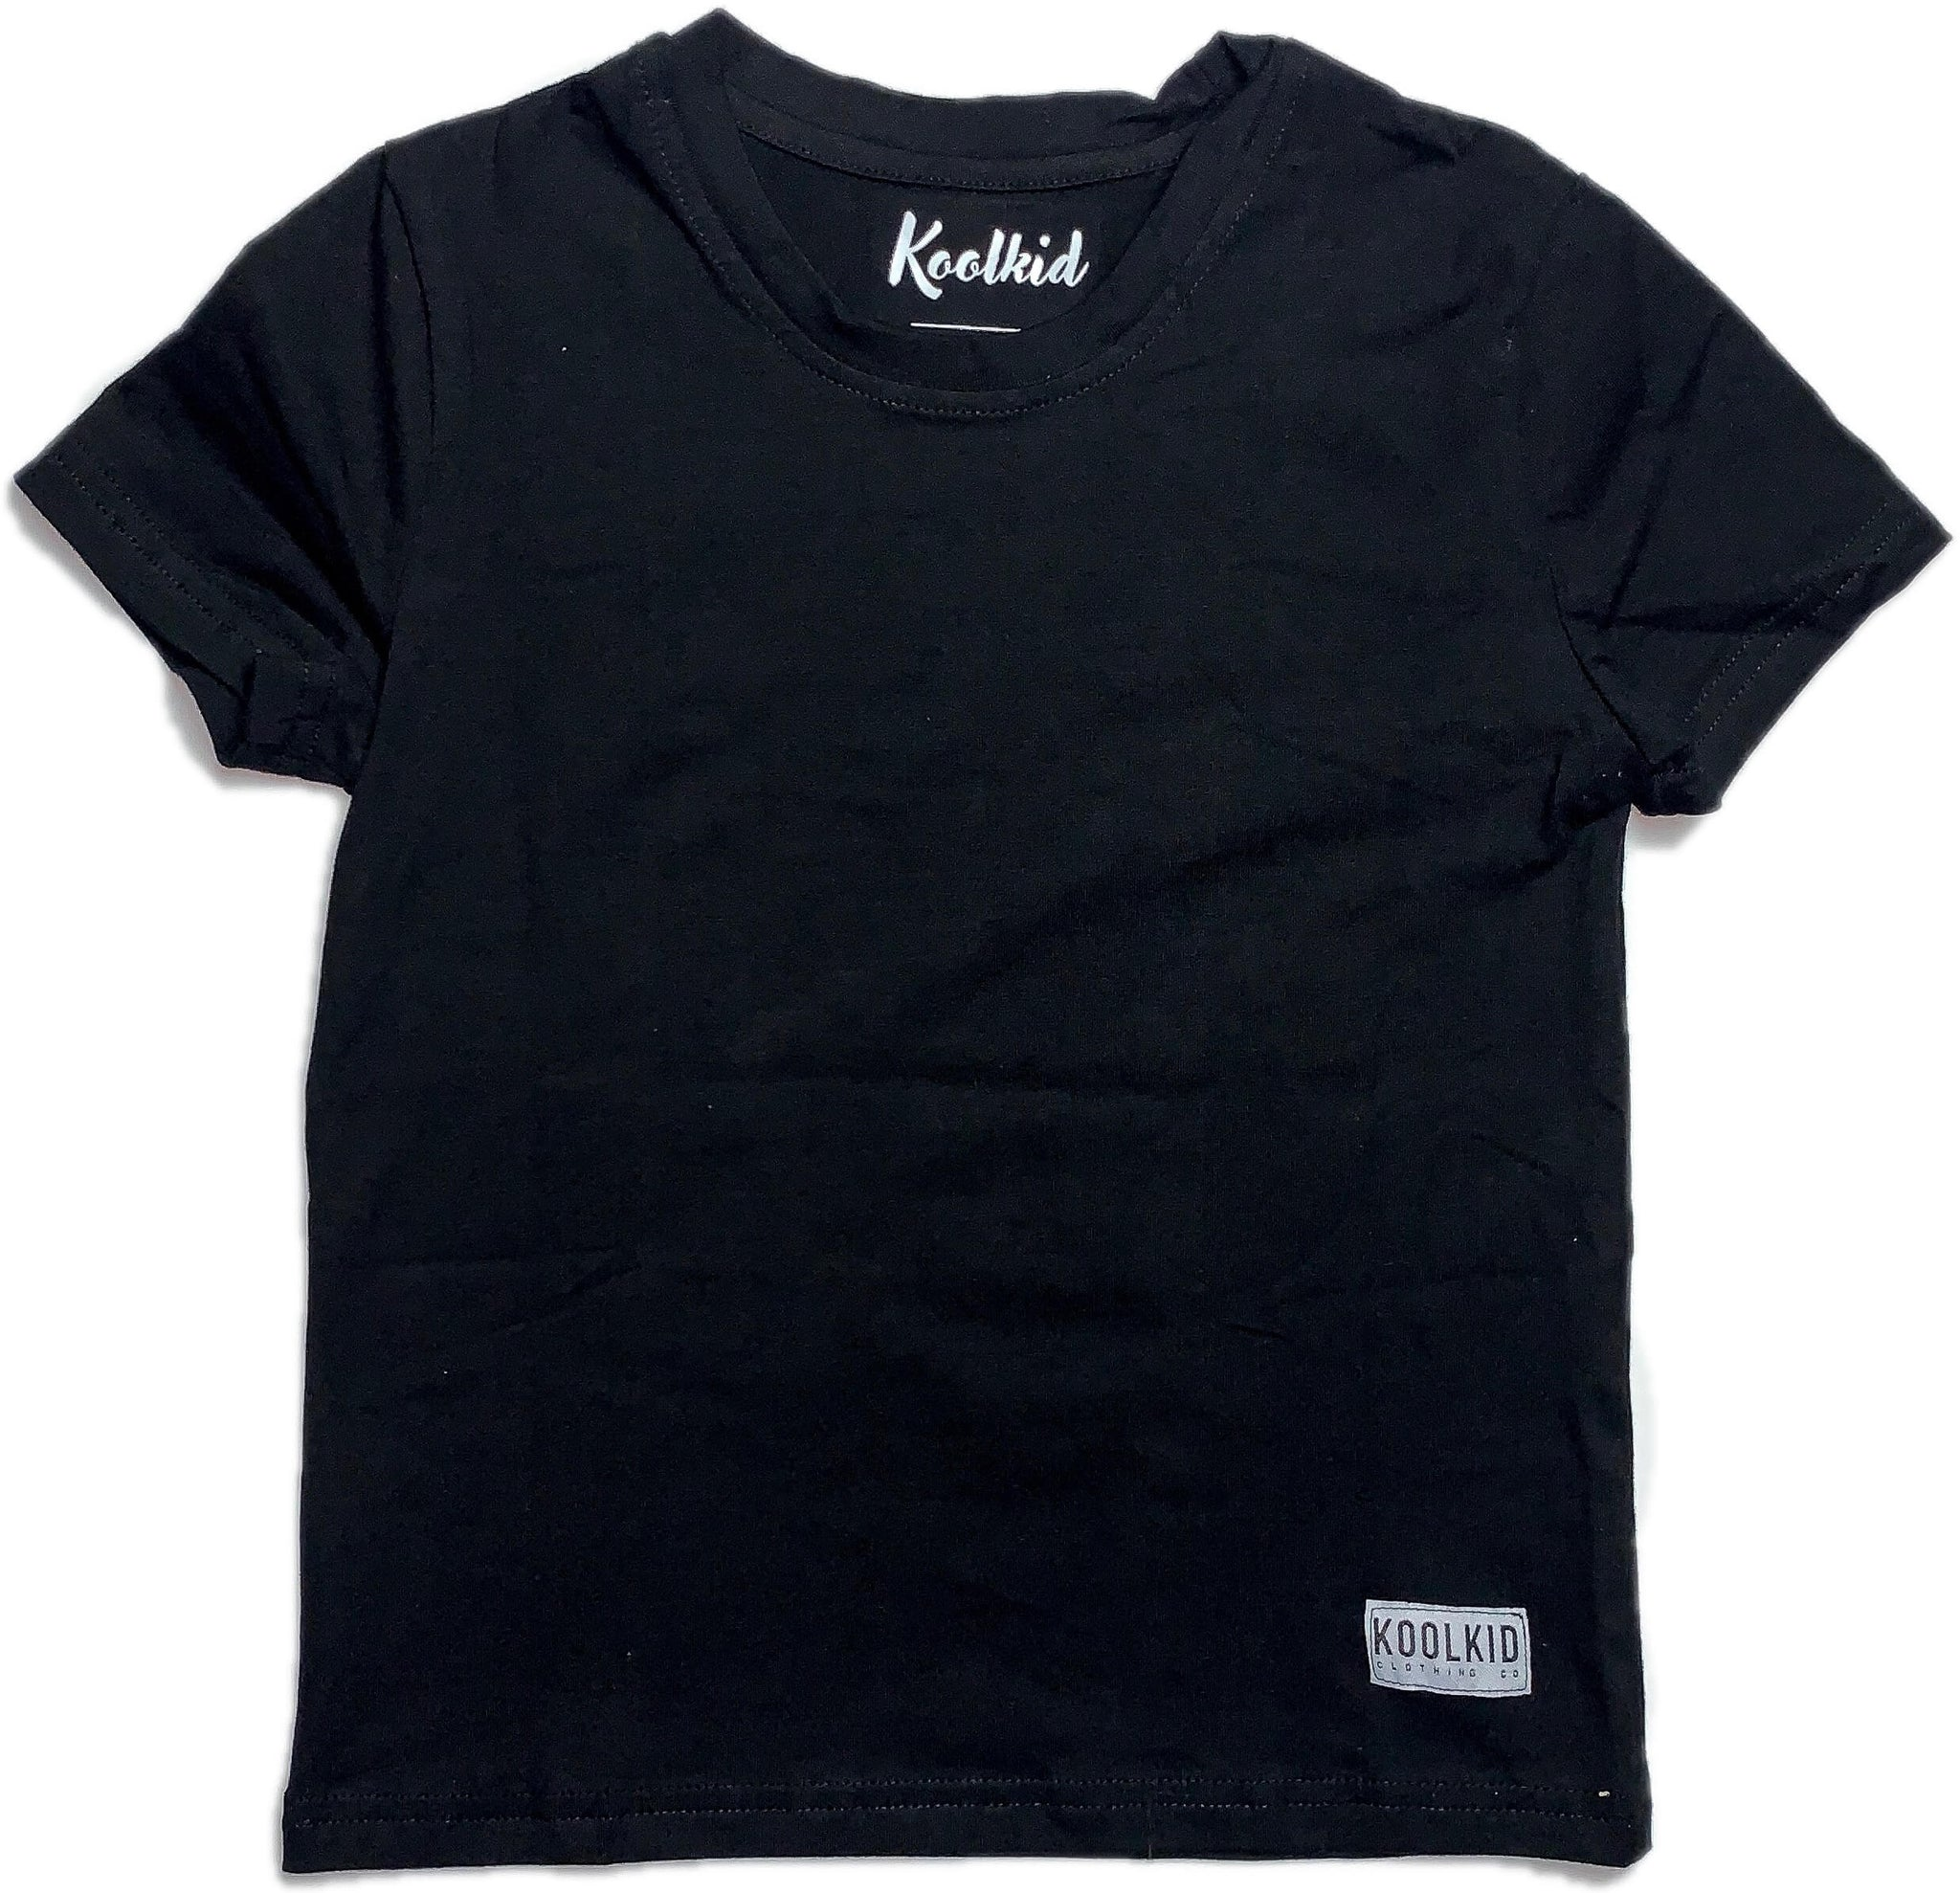 KOOLKID BACK LOGO TEE//BLACK